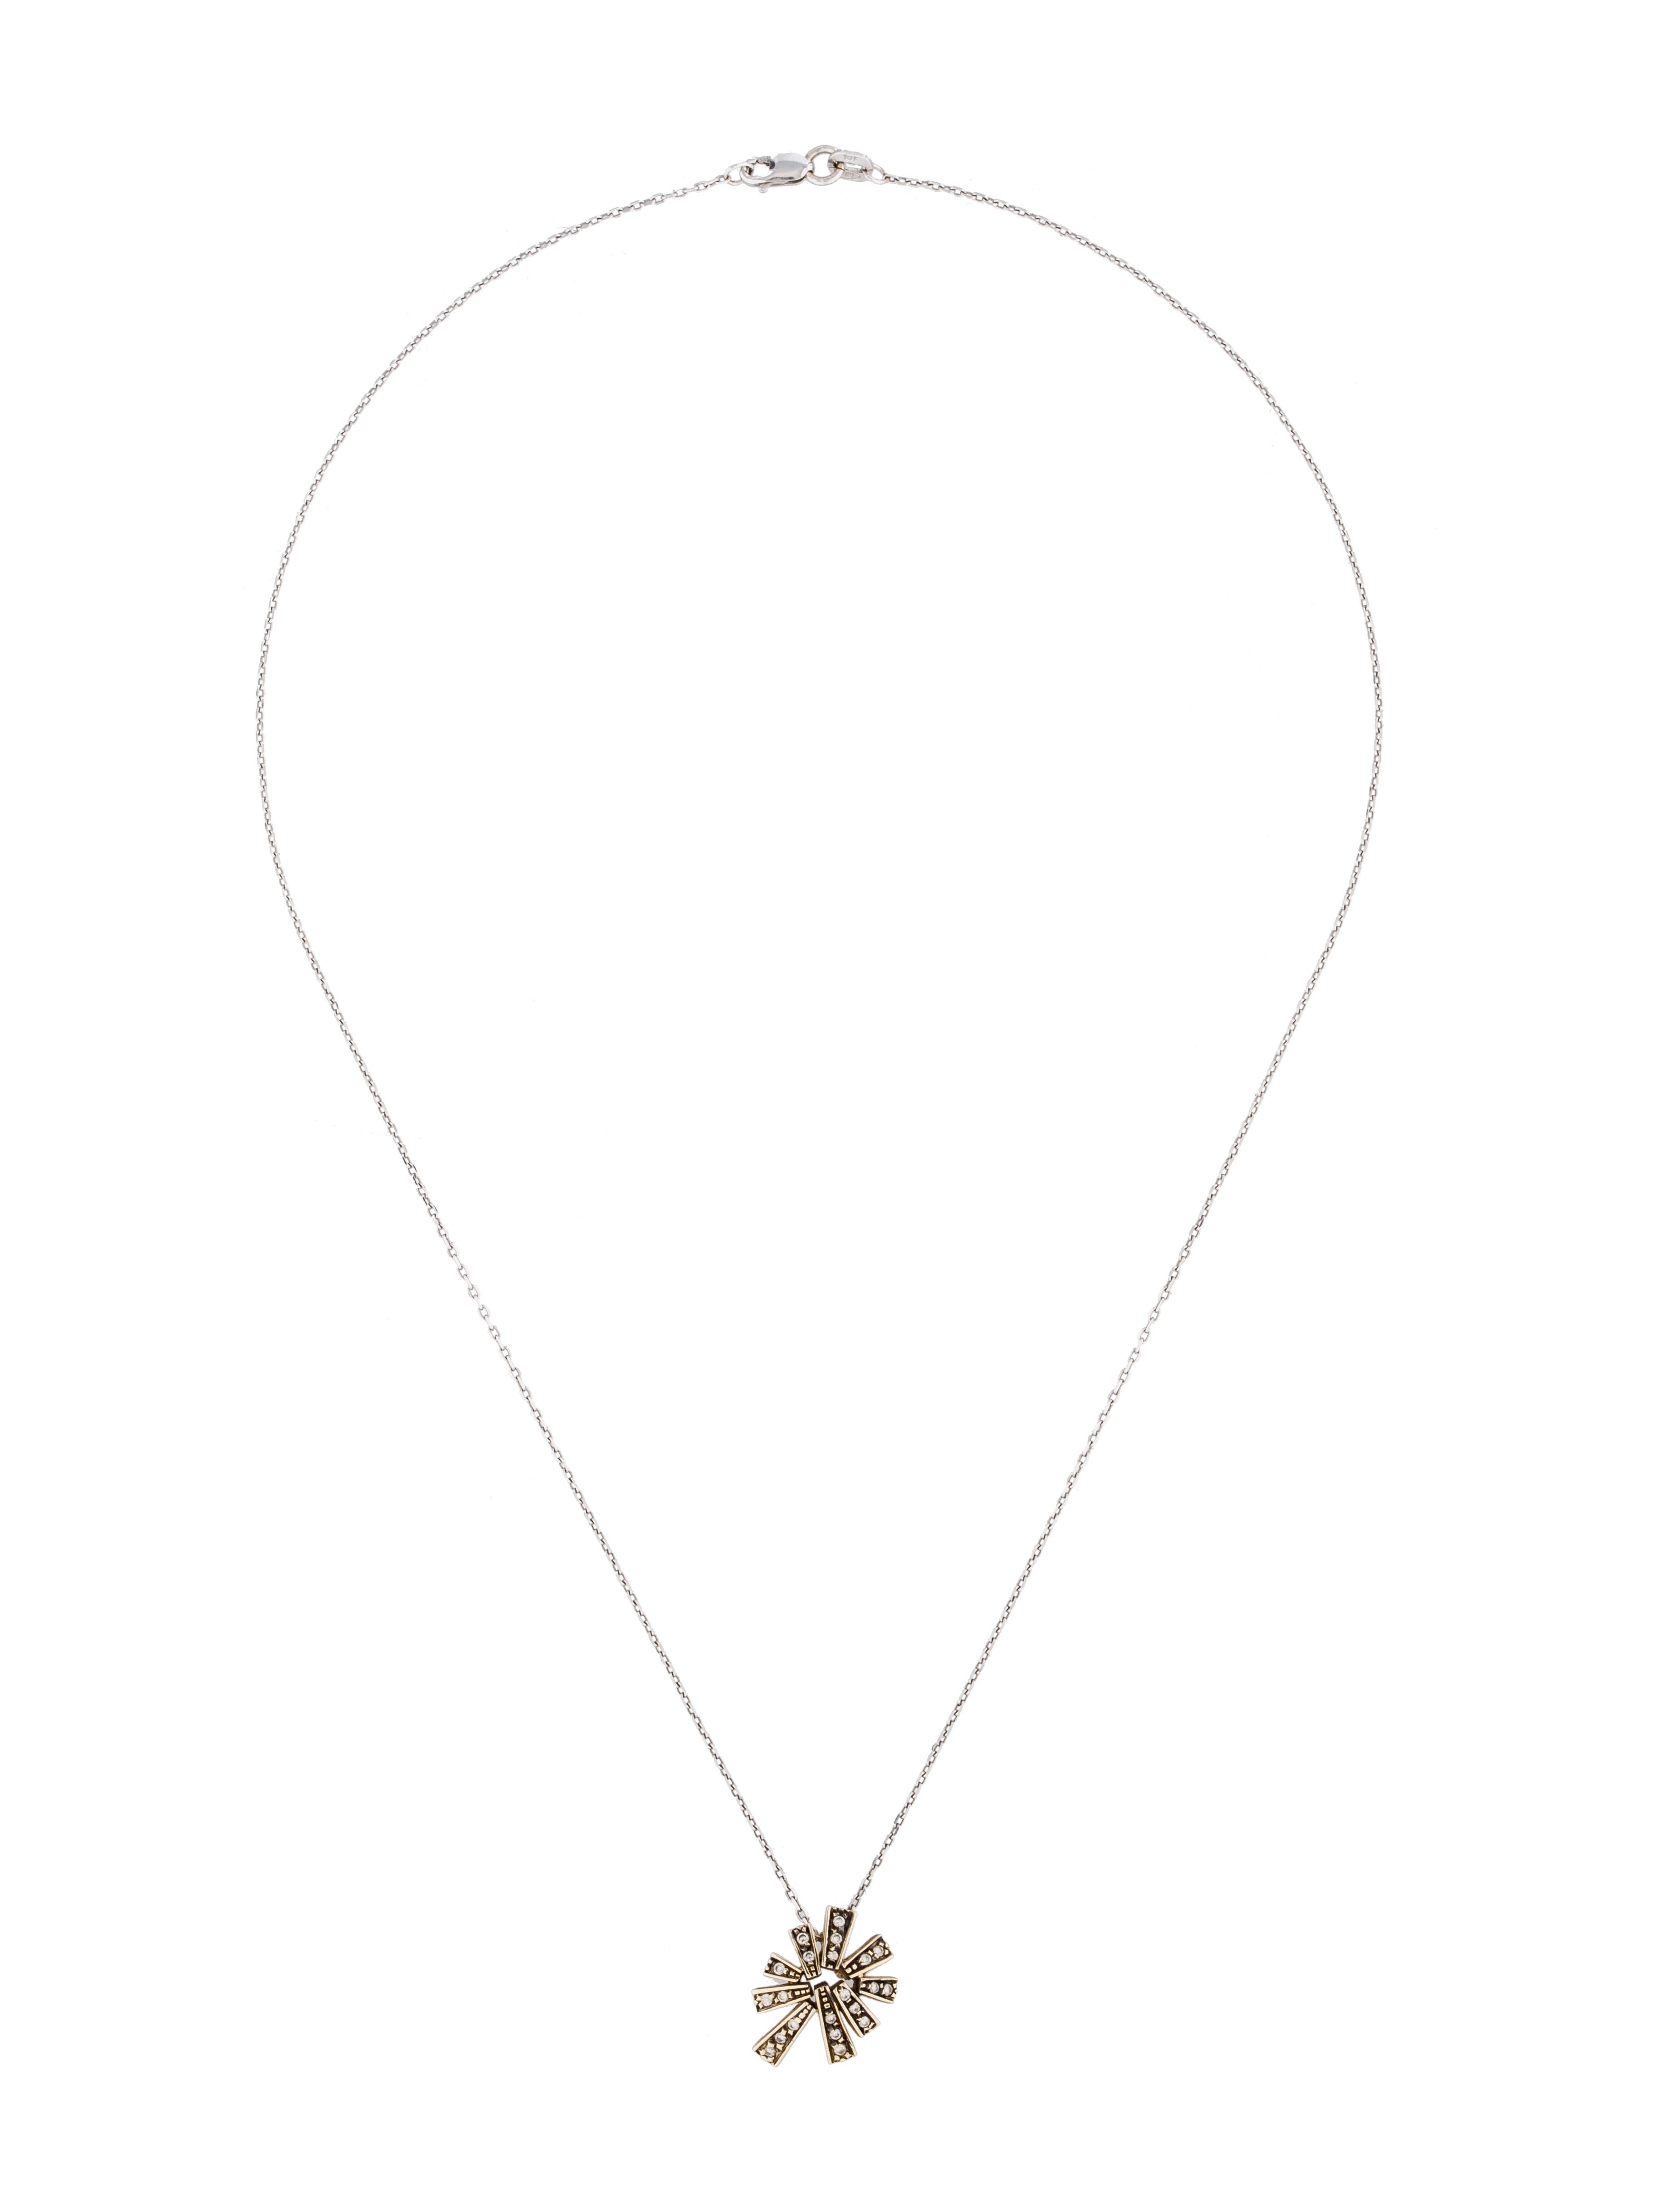 H Stern Stars Collection Diamond Pendant Necklace Necklaces